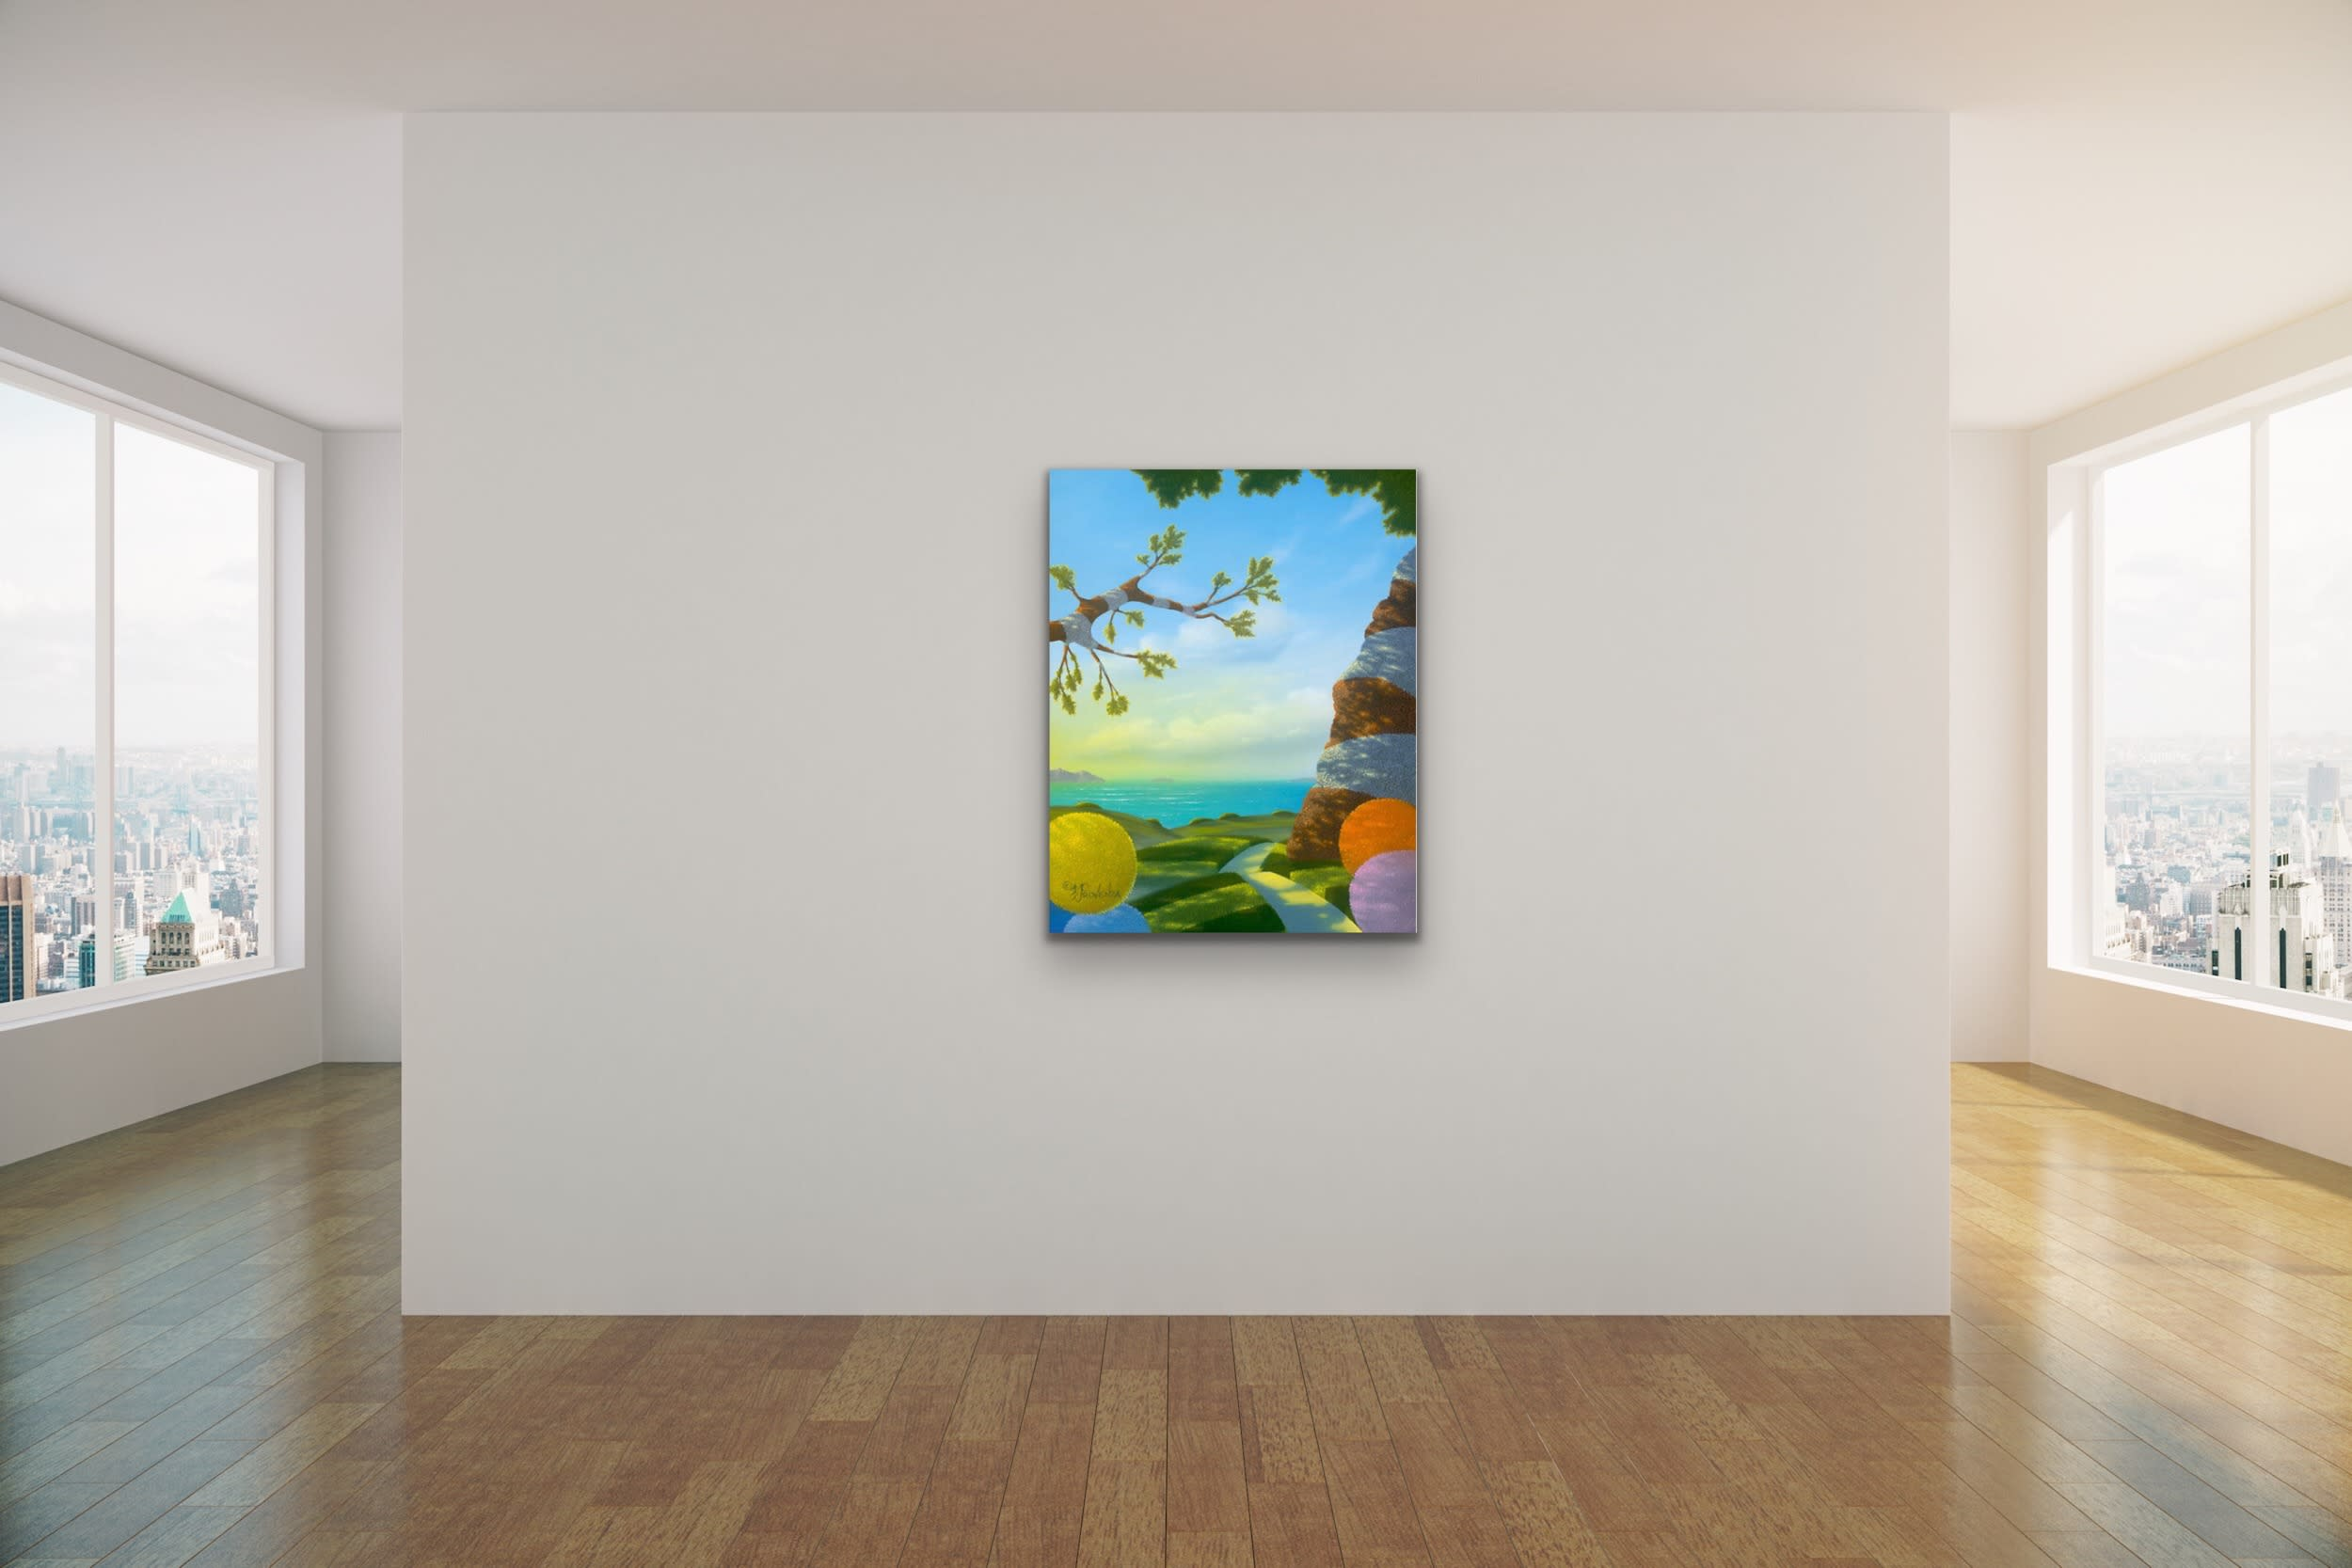 <div class='title'>           Michael Provenza Mock Ups Evo Art Maui Lahaina Gallery Pointilism Disney Artist Dreamscape Surreal Colorful Dots 4         </div>